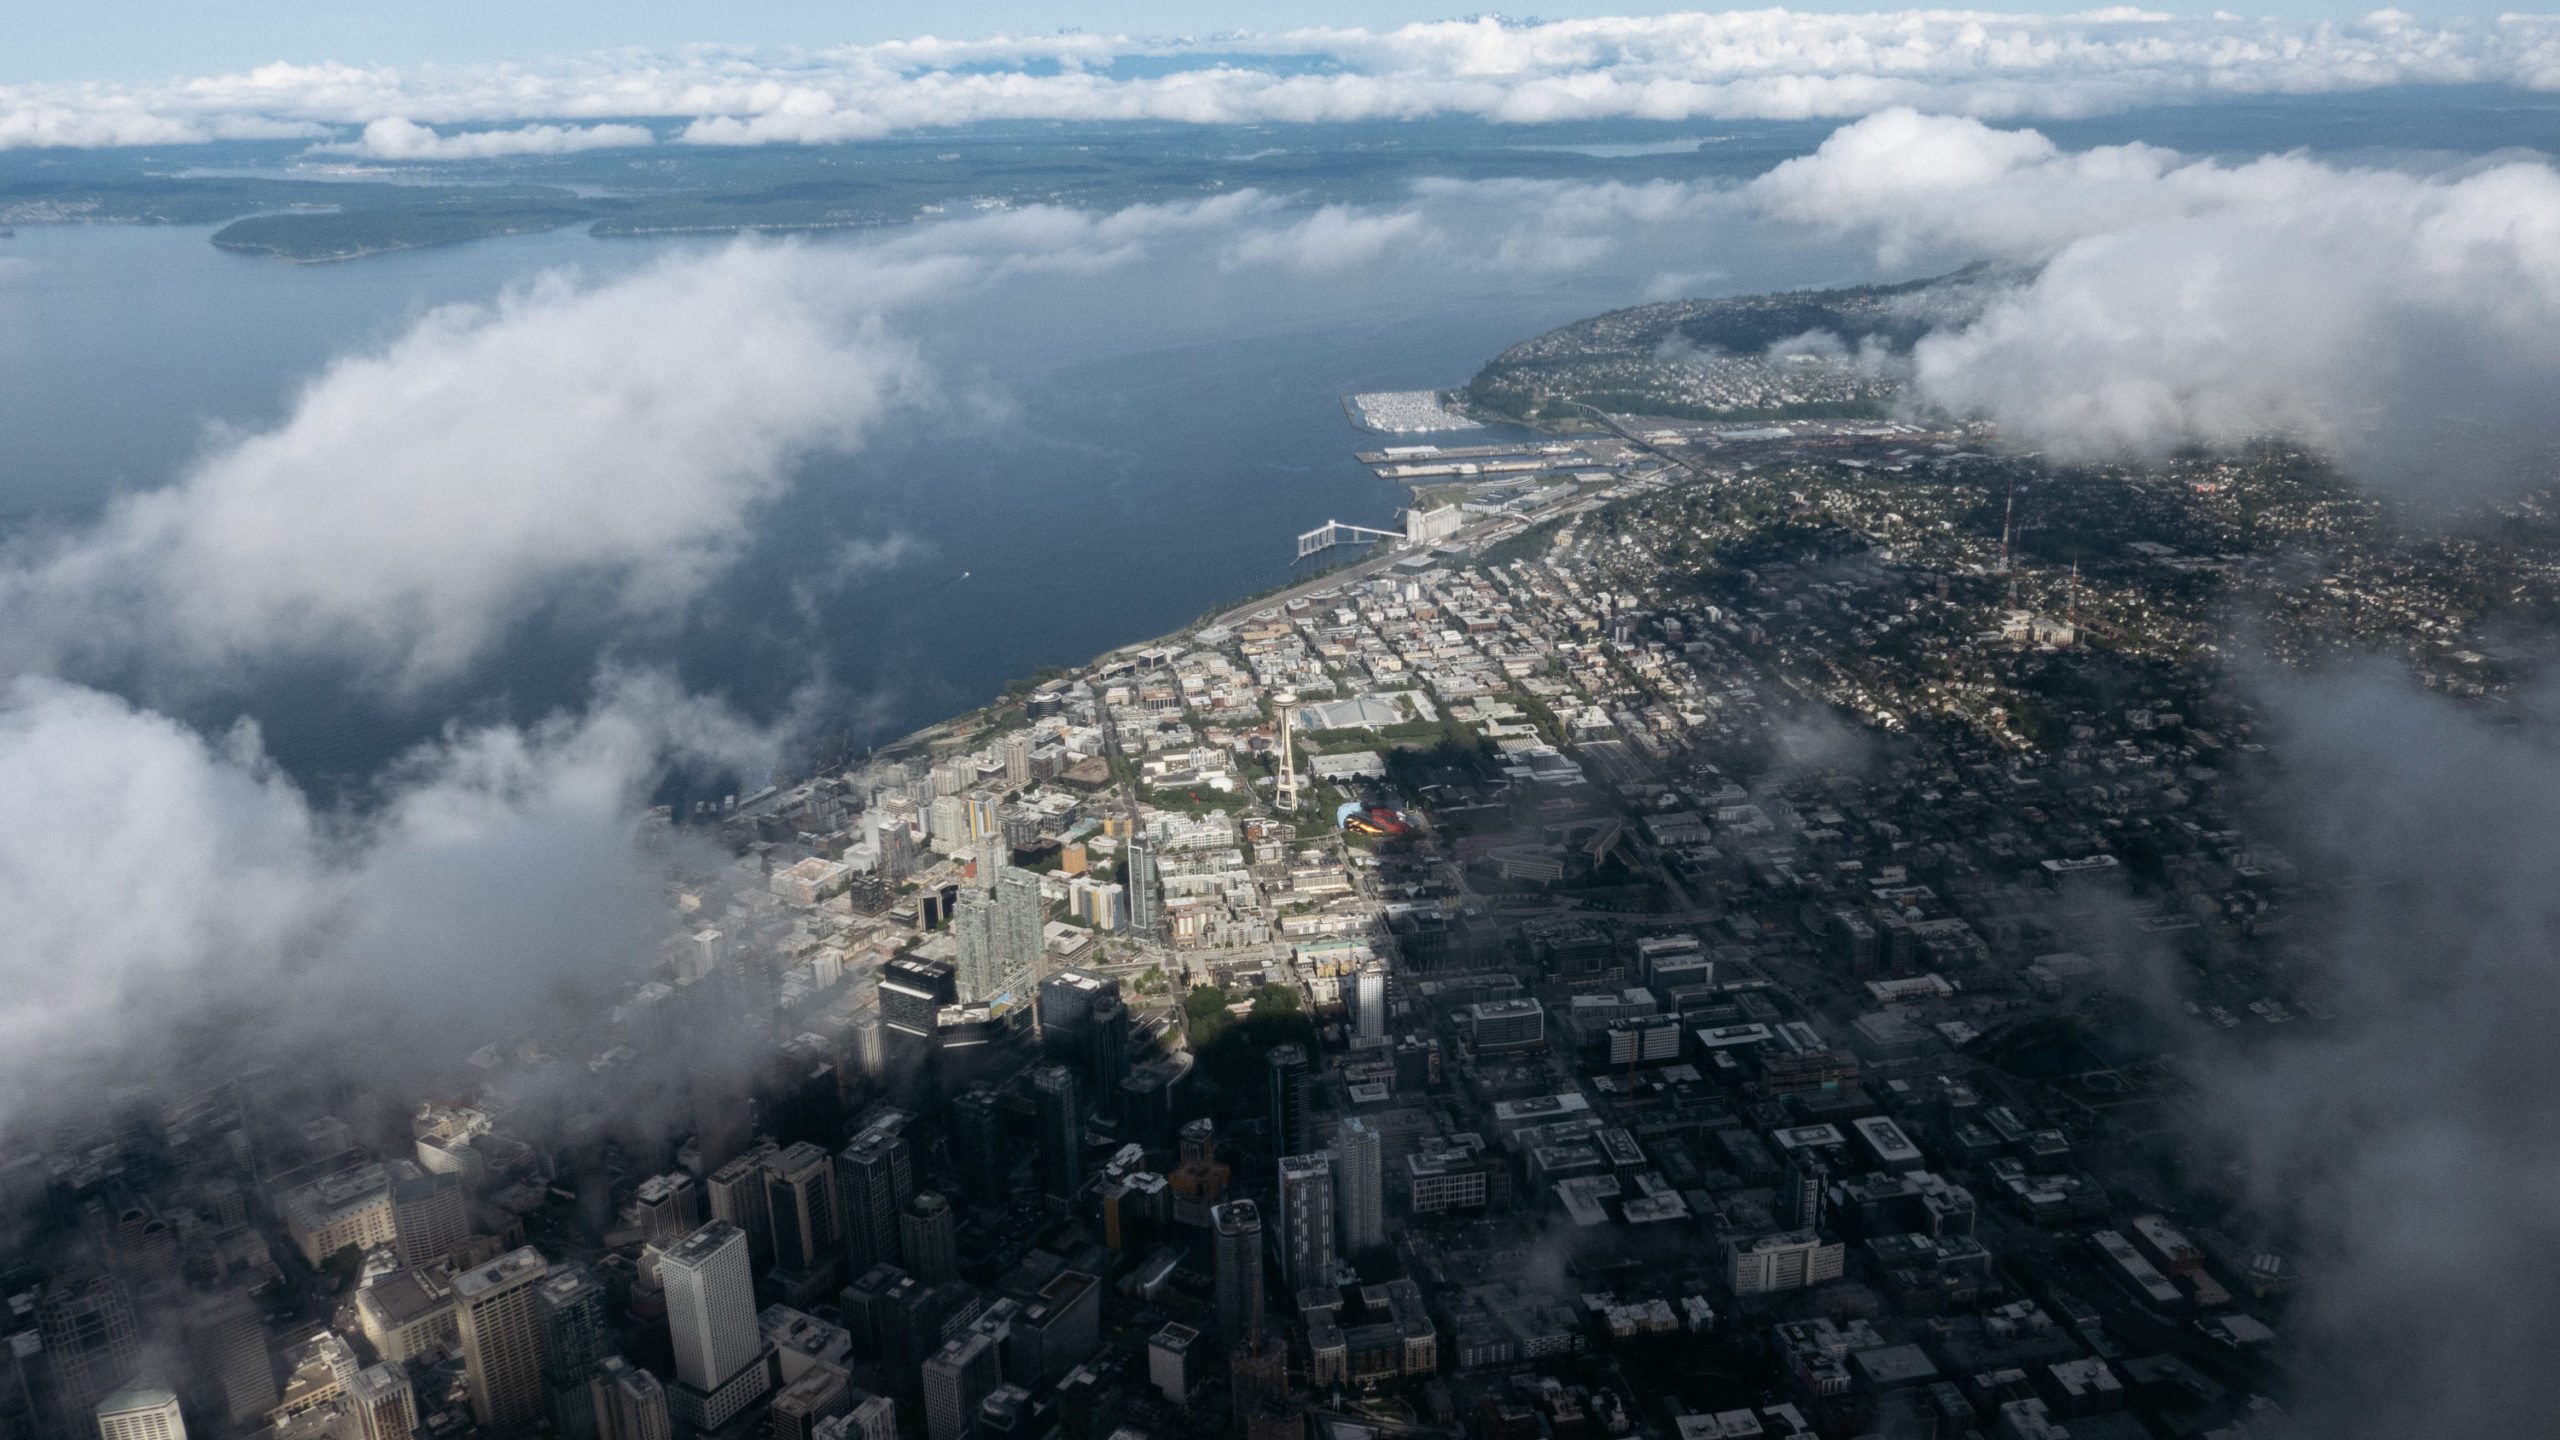 Seattle's space needle as viewed from an airplane window